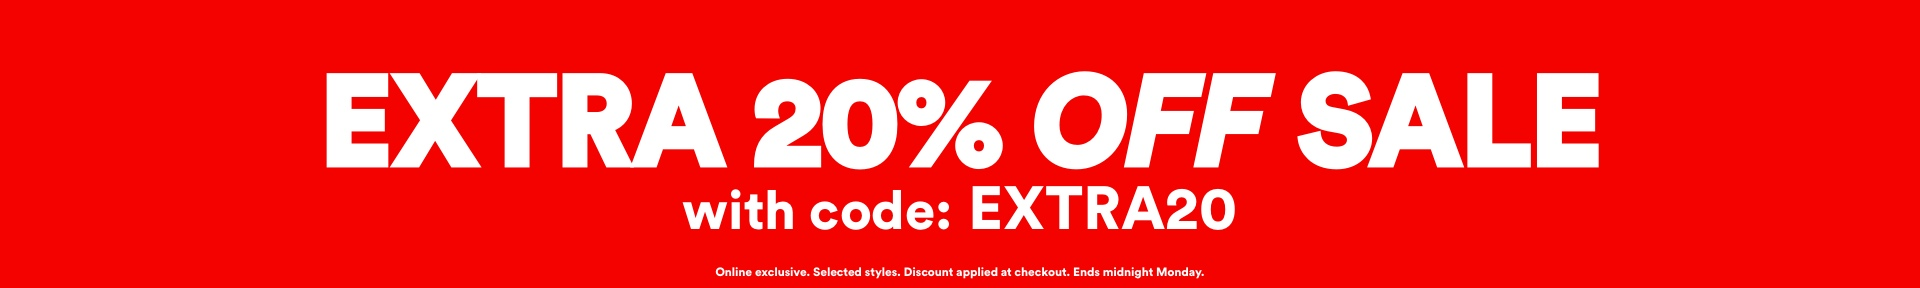 EXTRA 20% off Sale with code: EXTRA20. T&Cs apply